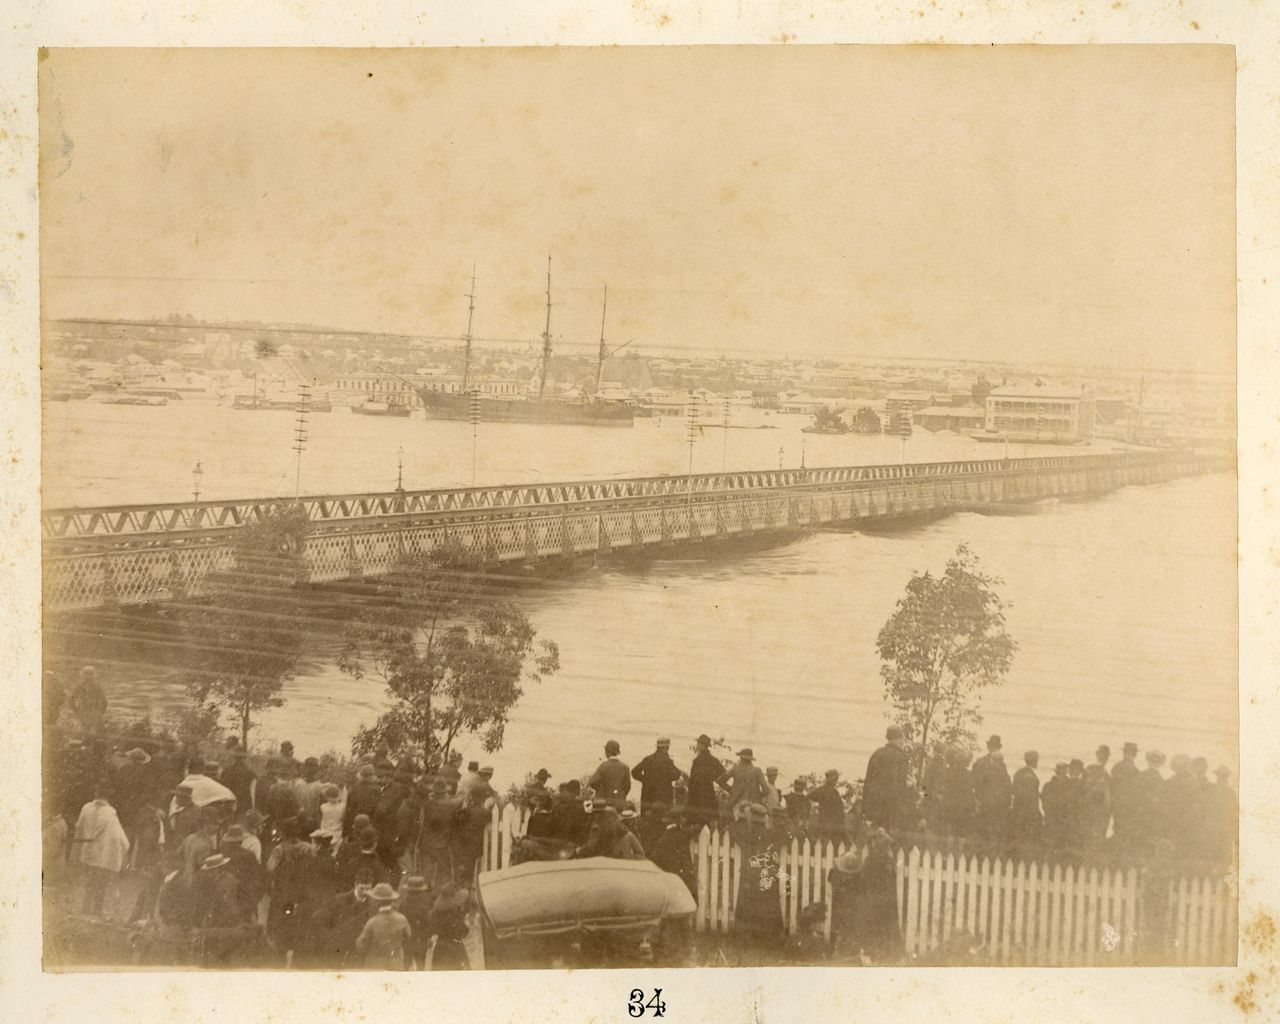 Image of people standing at North Quay looking at flooded Brisbane River and Victoria Bridge, South Brisbane in the background.